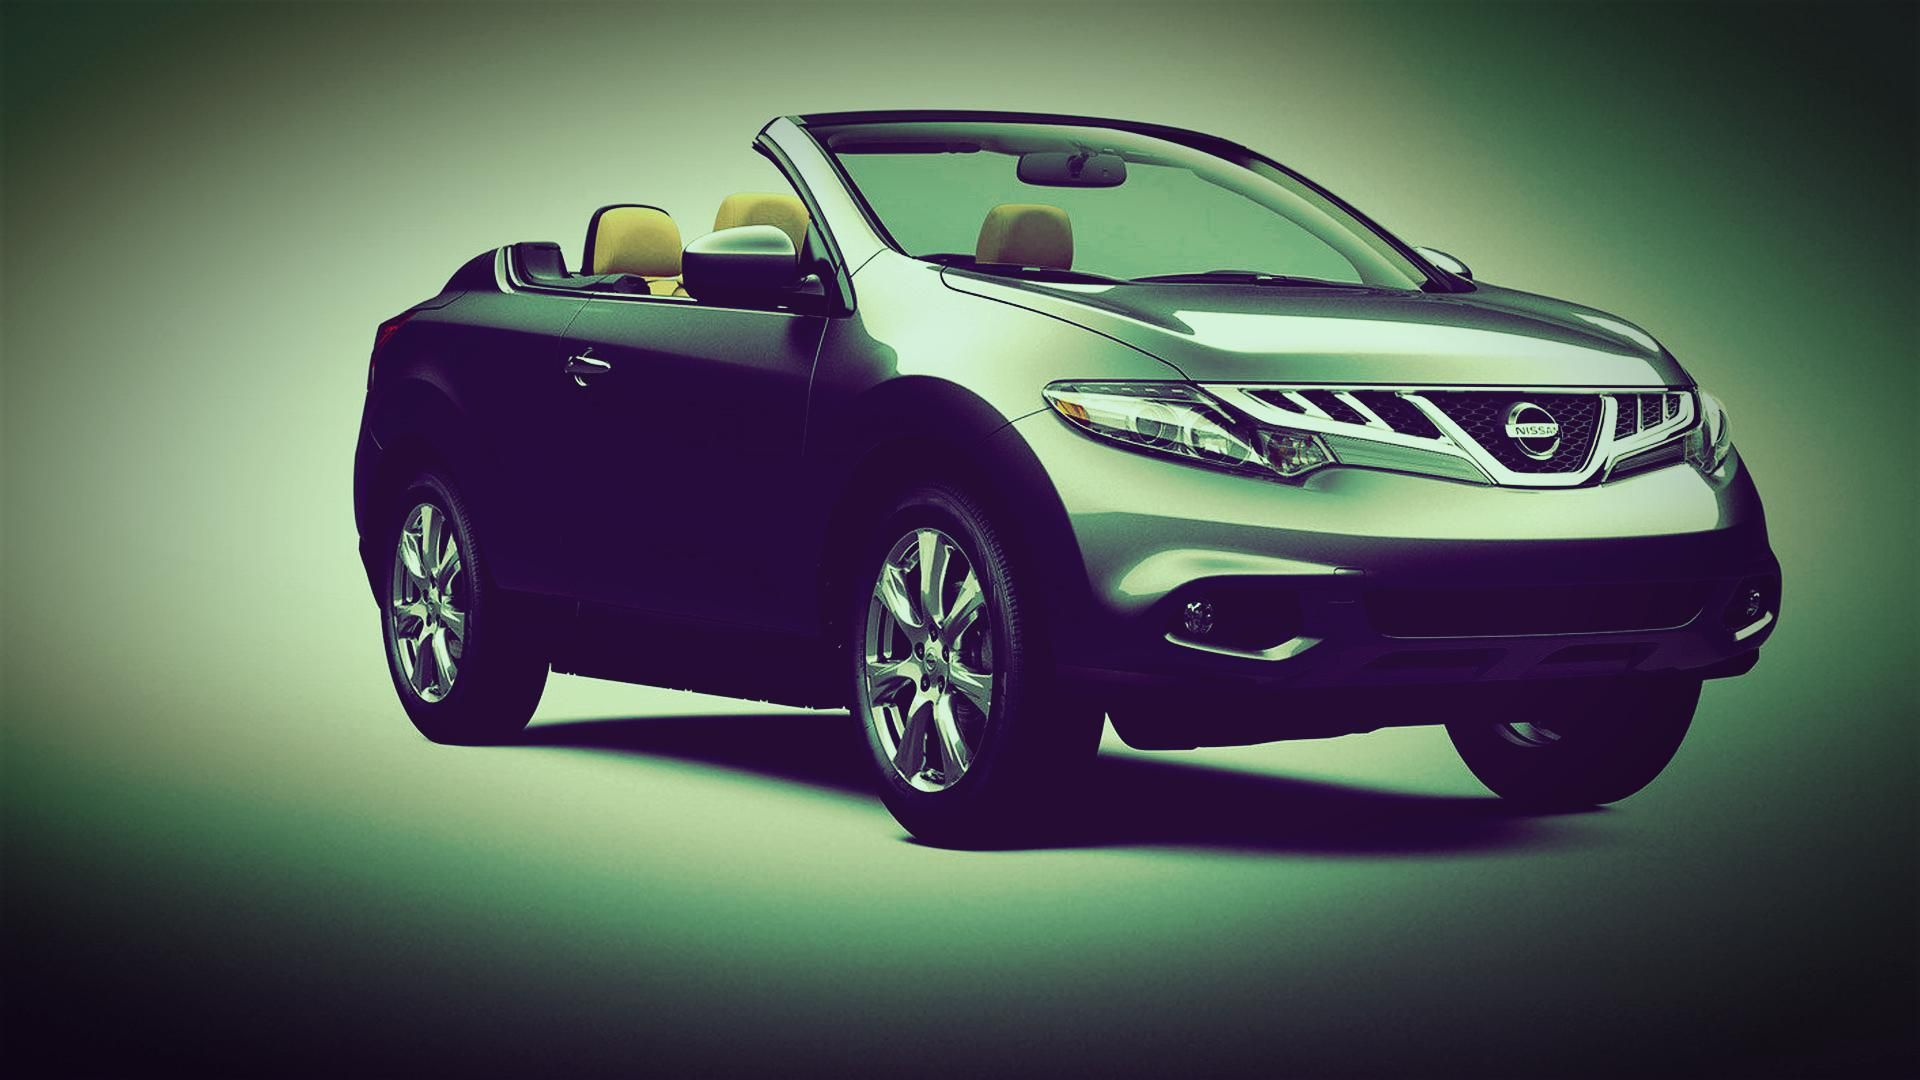 Nissan Murano Crosscabriolet Review 2014 Nissan Murano CrossCabriolet Full  Review